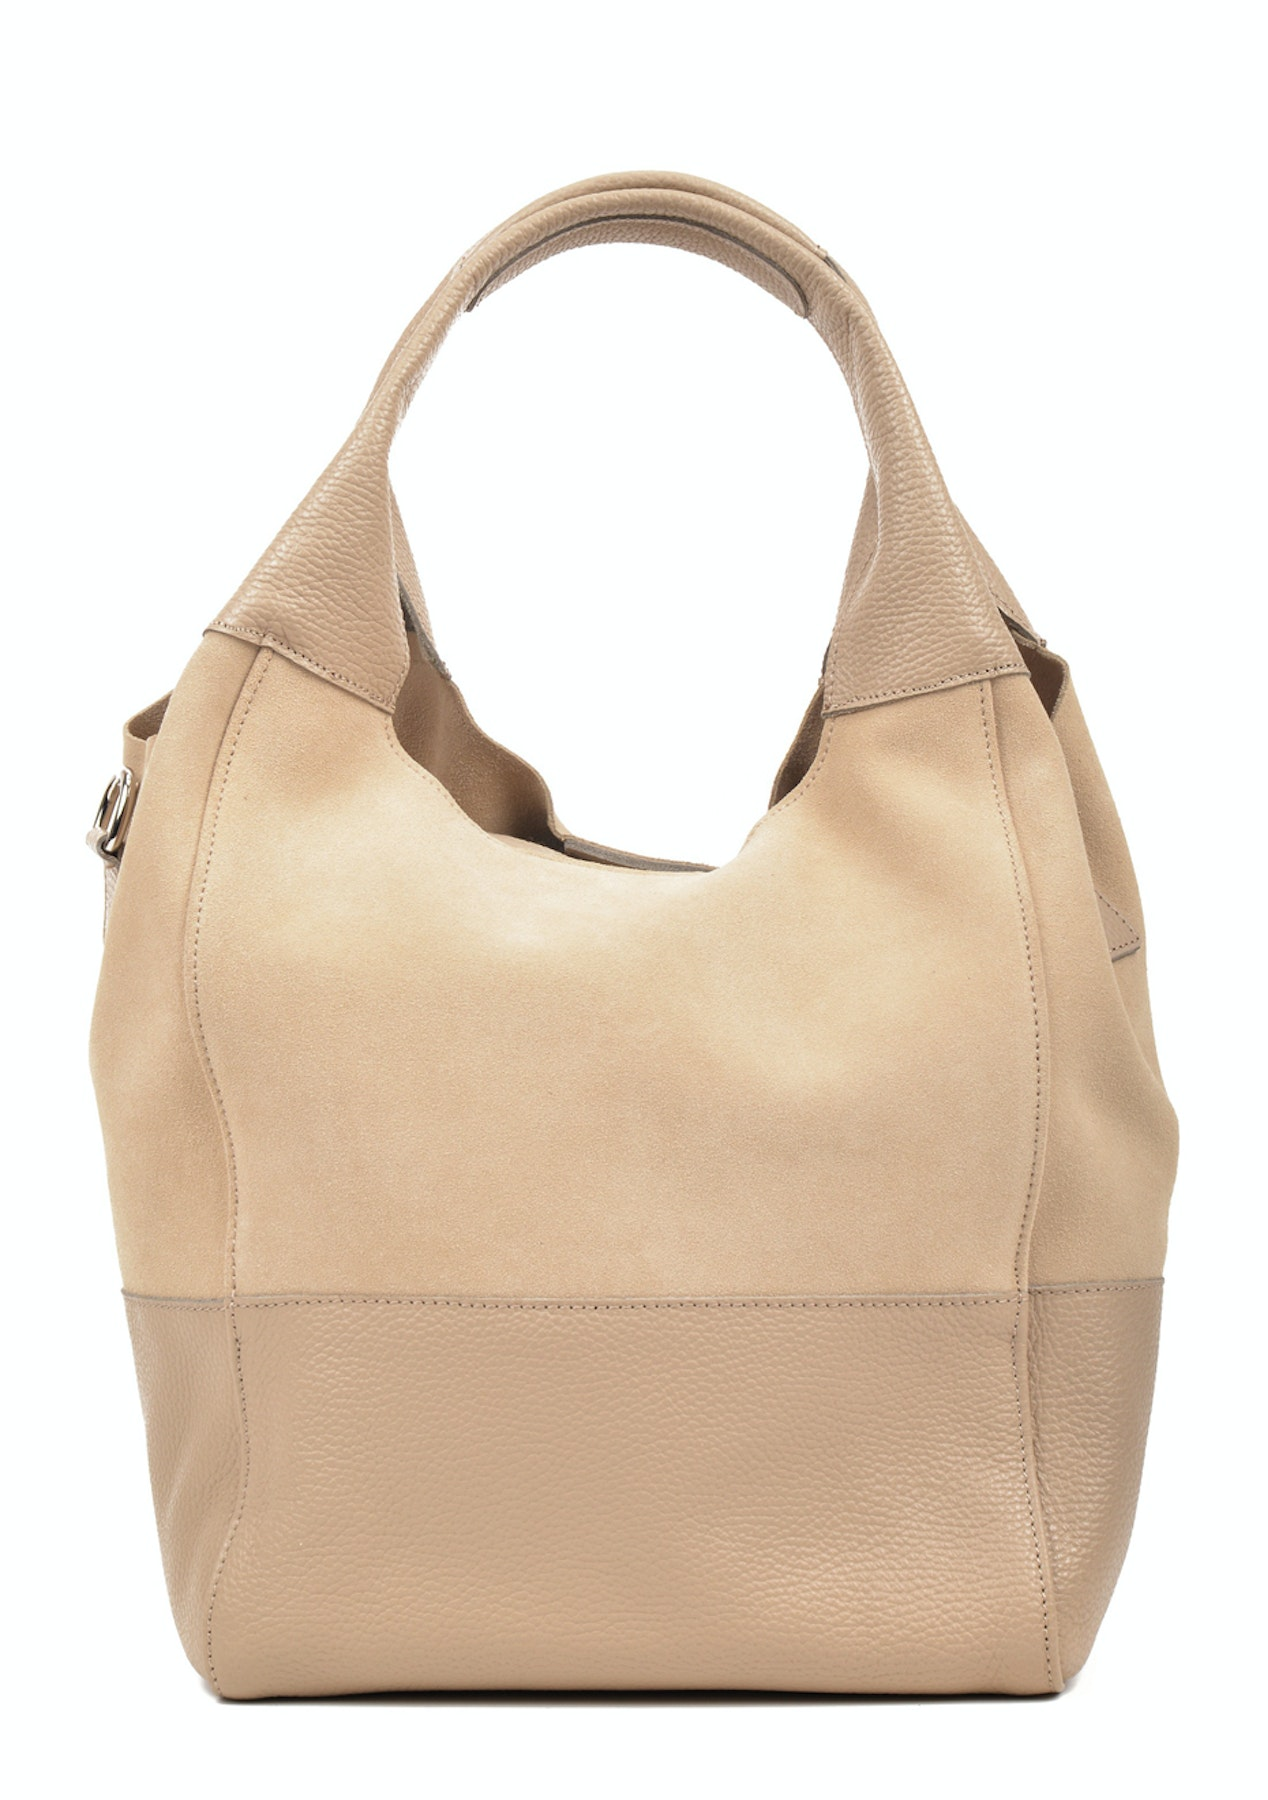 8515a5da73 Luisa Vannini - Hobo Bag - Beige - Monochrome Leather bags up to 74% off -  Onceit